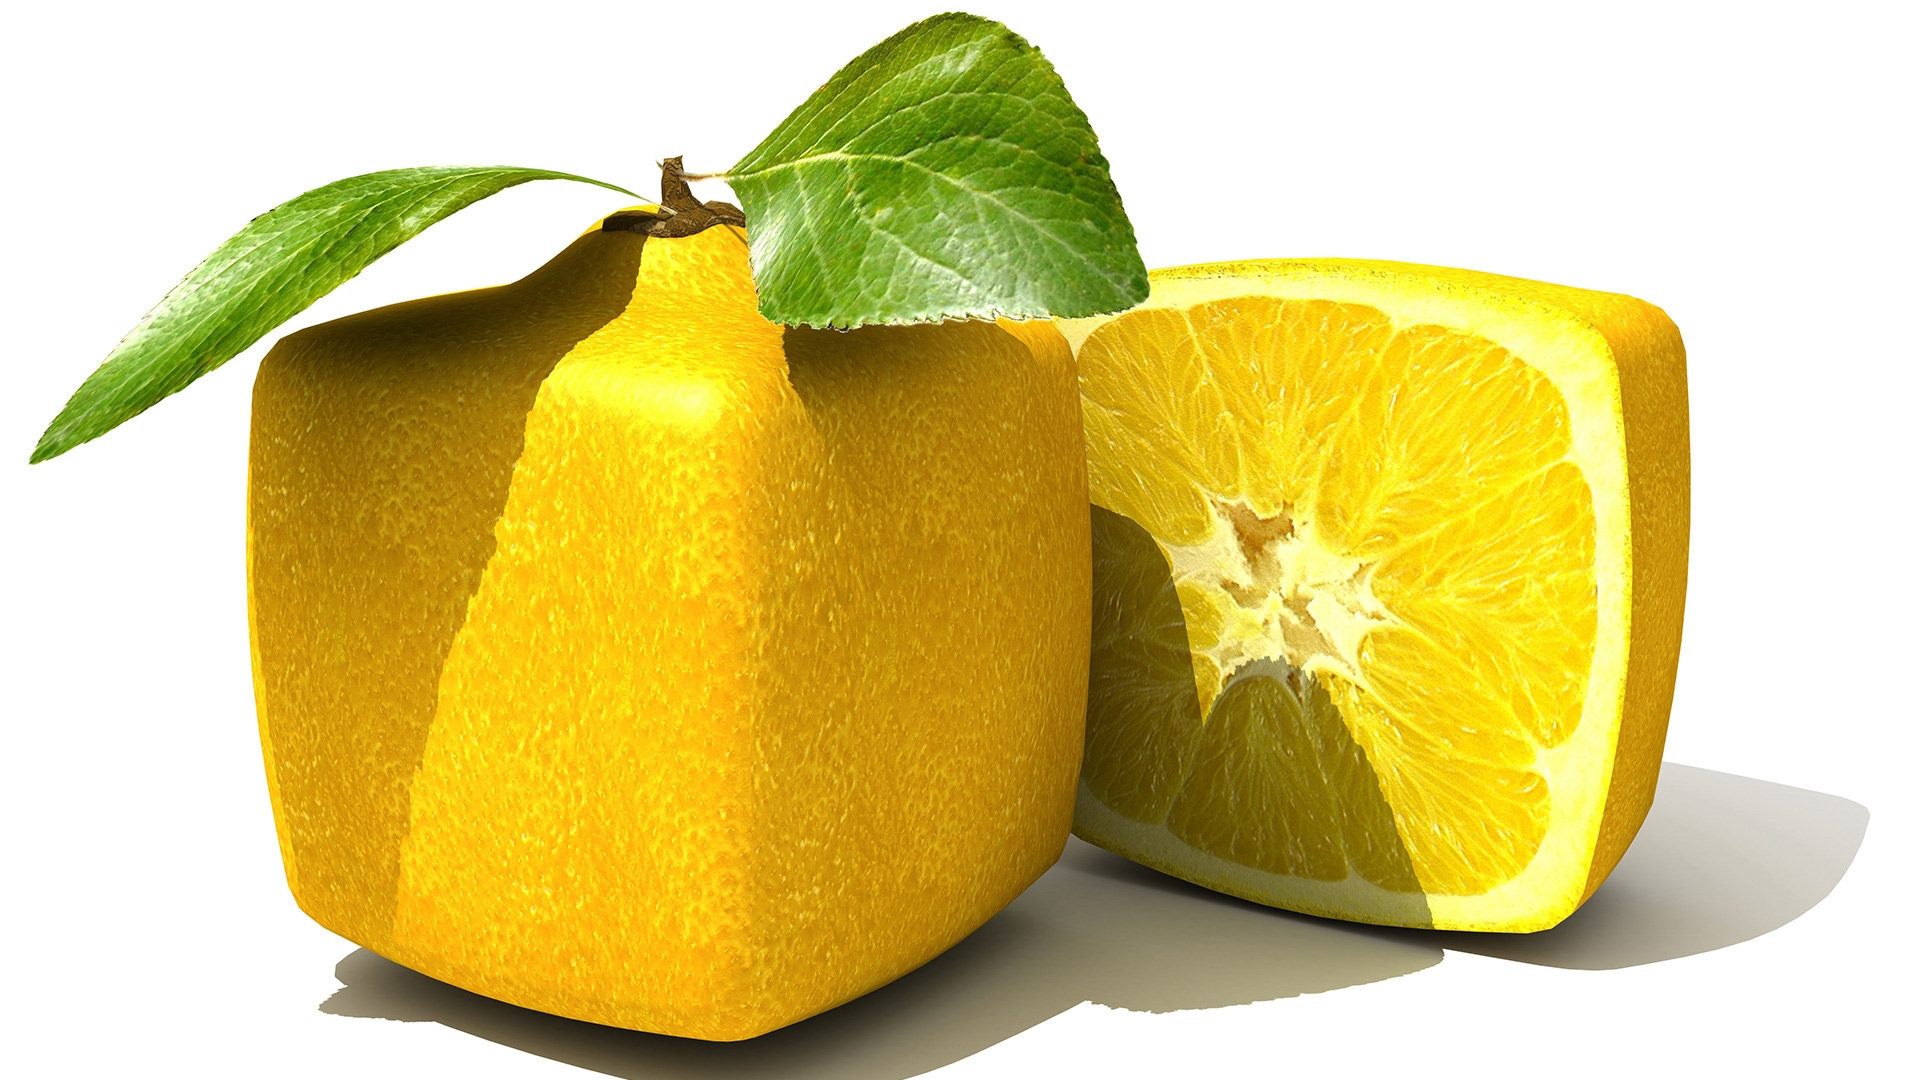 Square Lemons Computer Wallpapers, Desktop Backgrounds ...